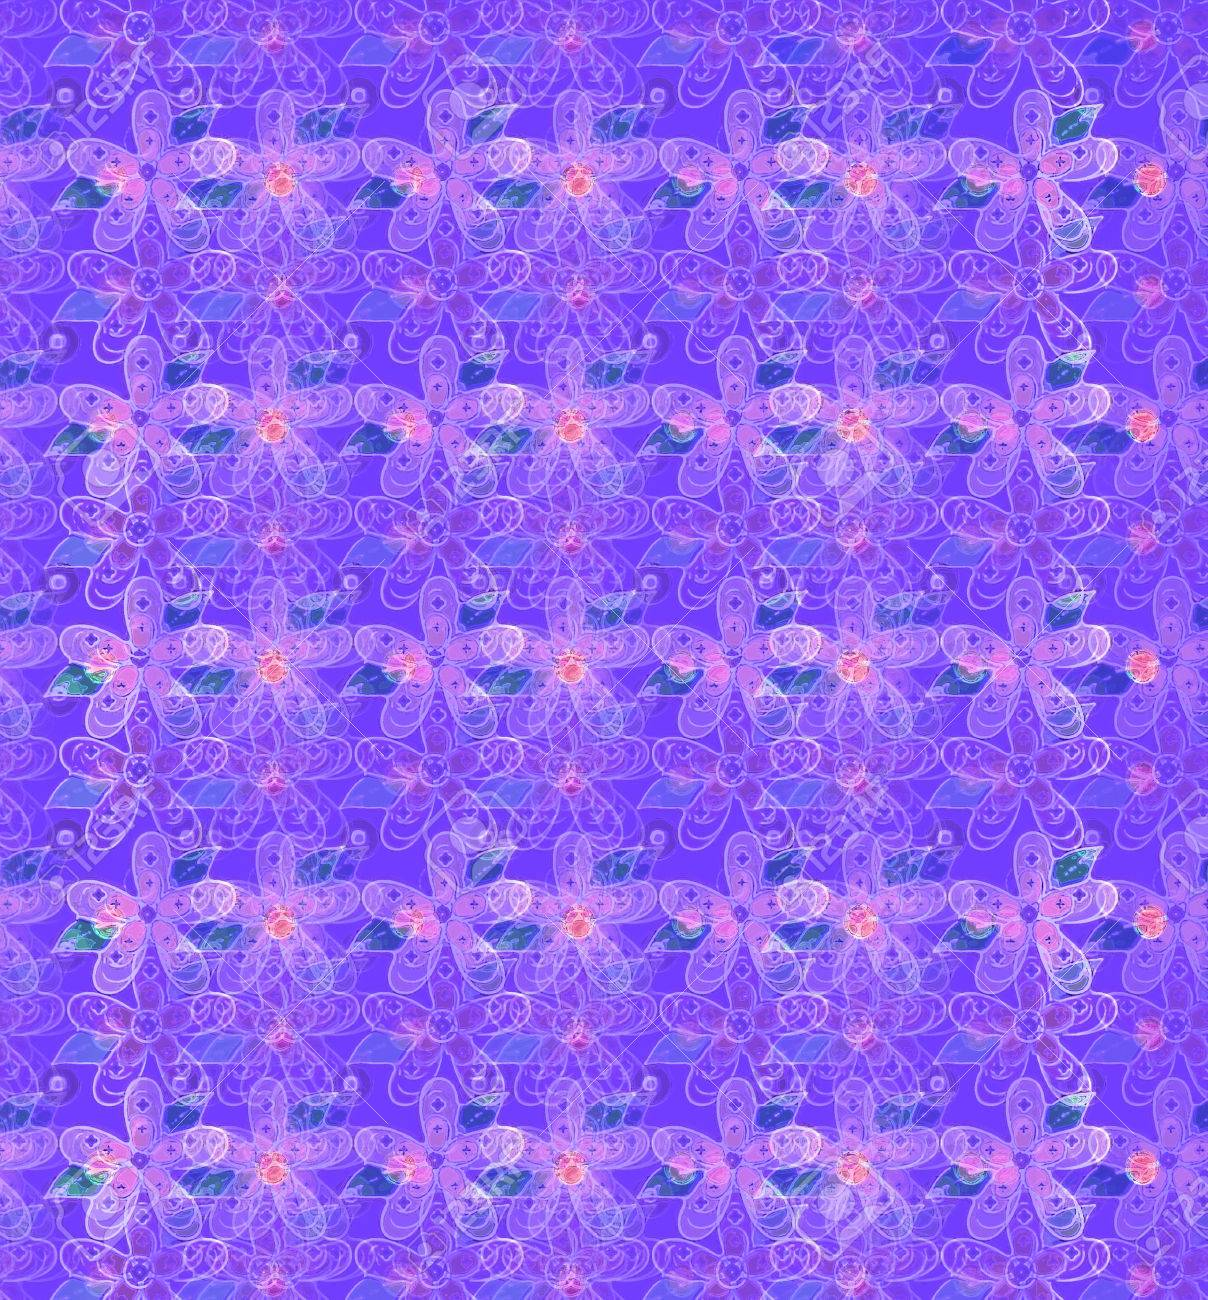 Soft Semi Transparent Flowers Spill Across A Purple Background